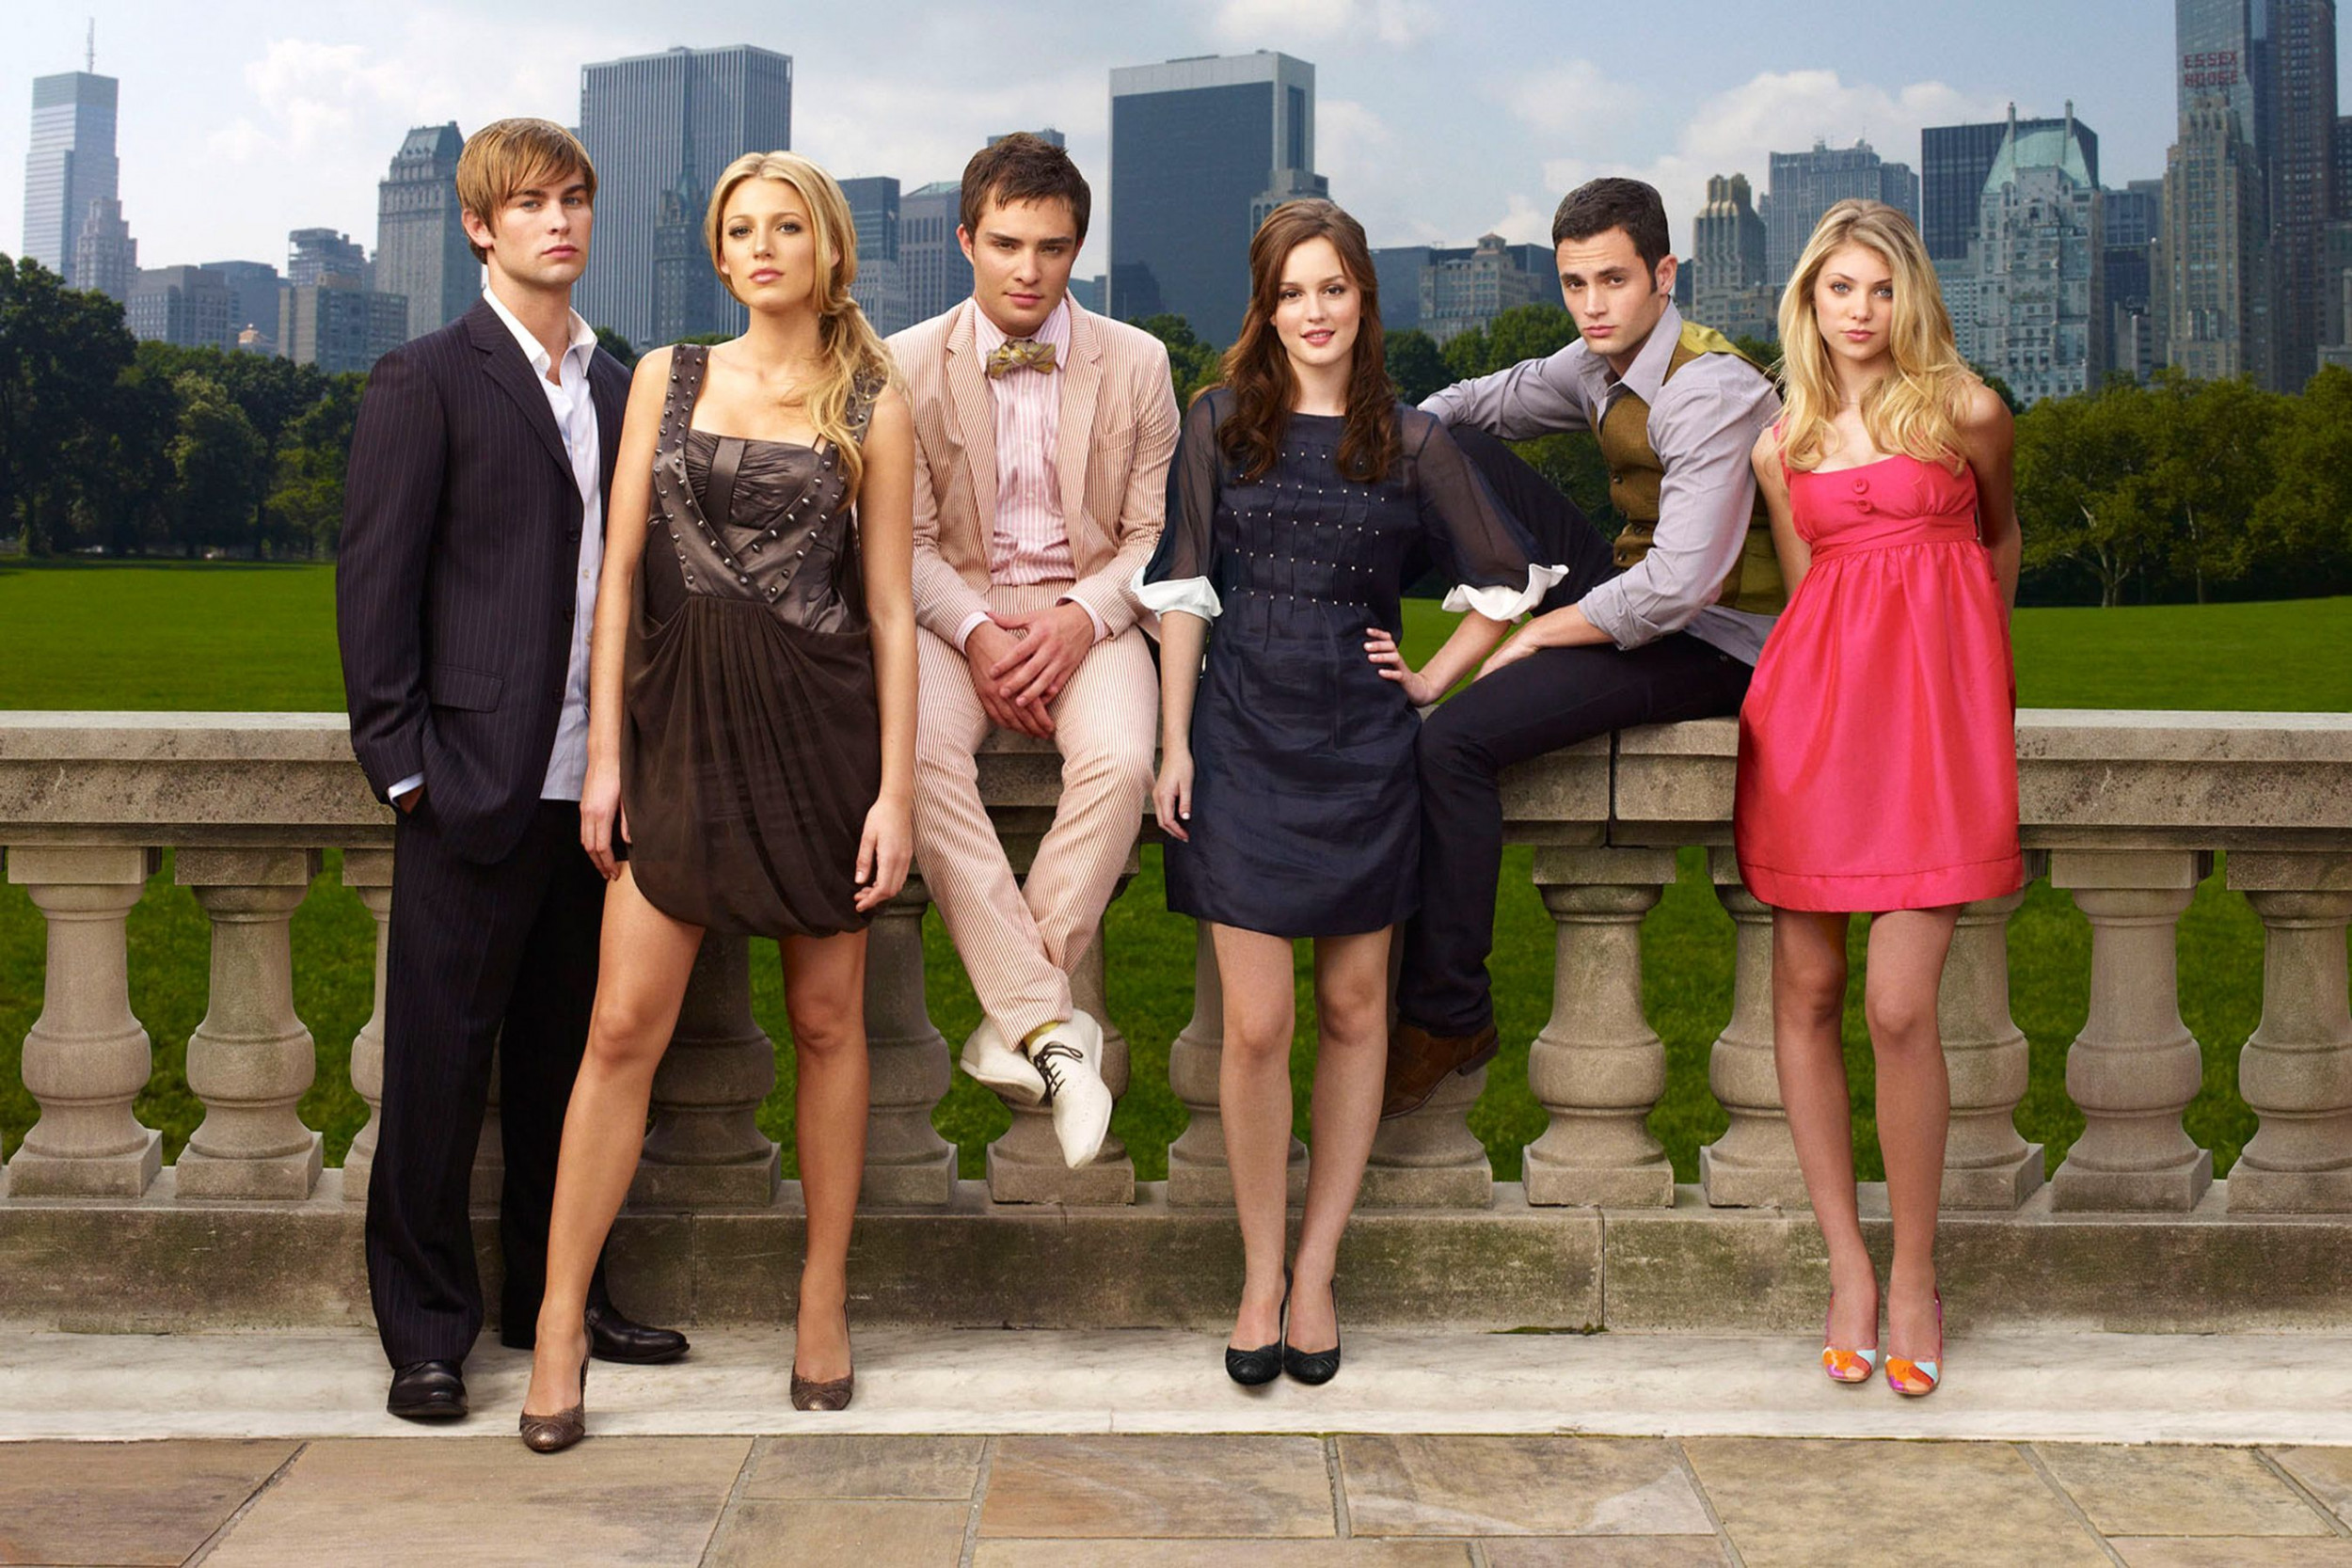 Where to watch 'Gossip Girl' after it leaves Netflix